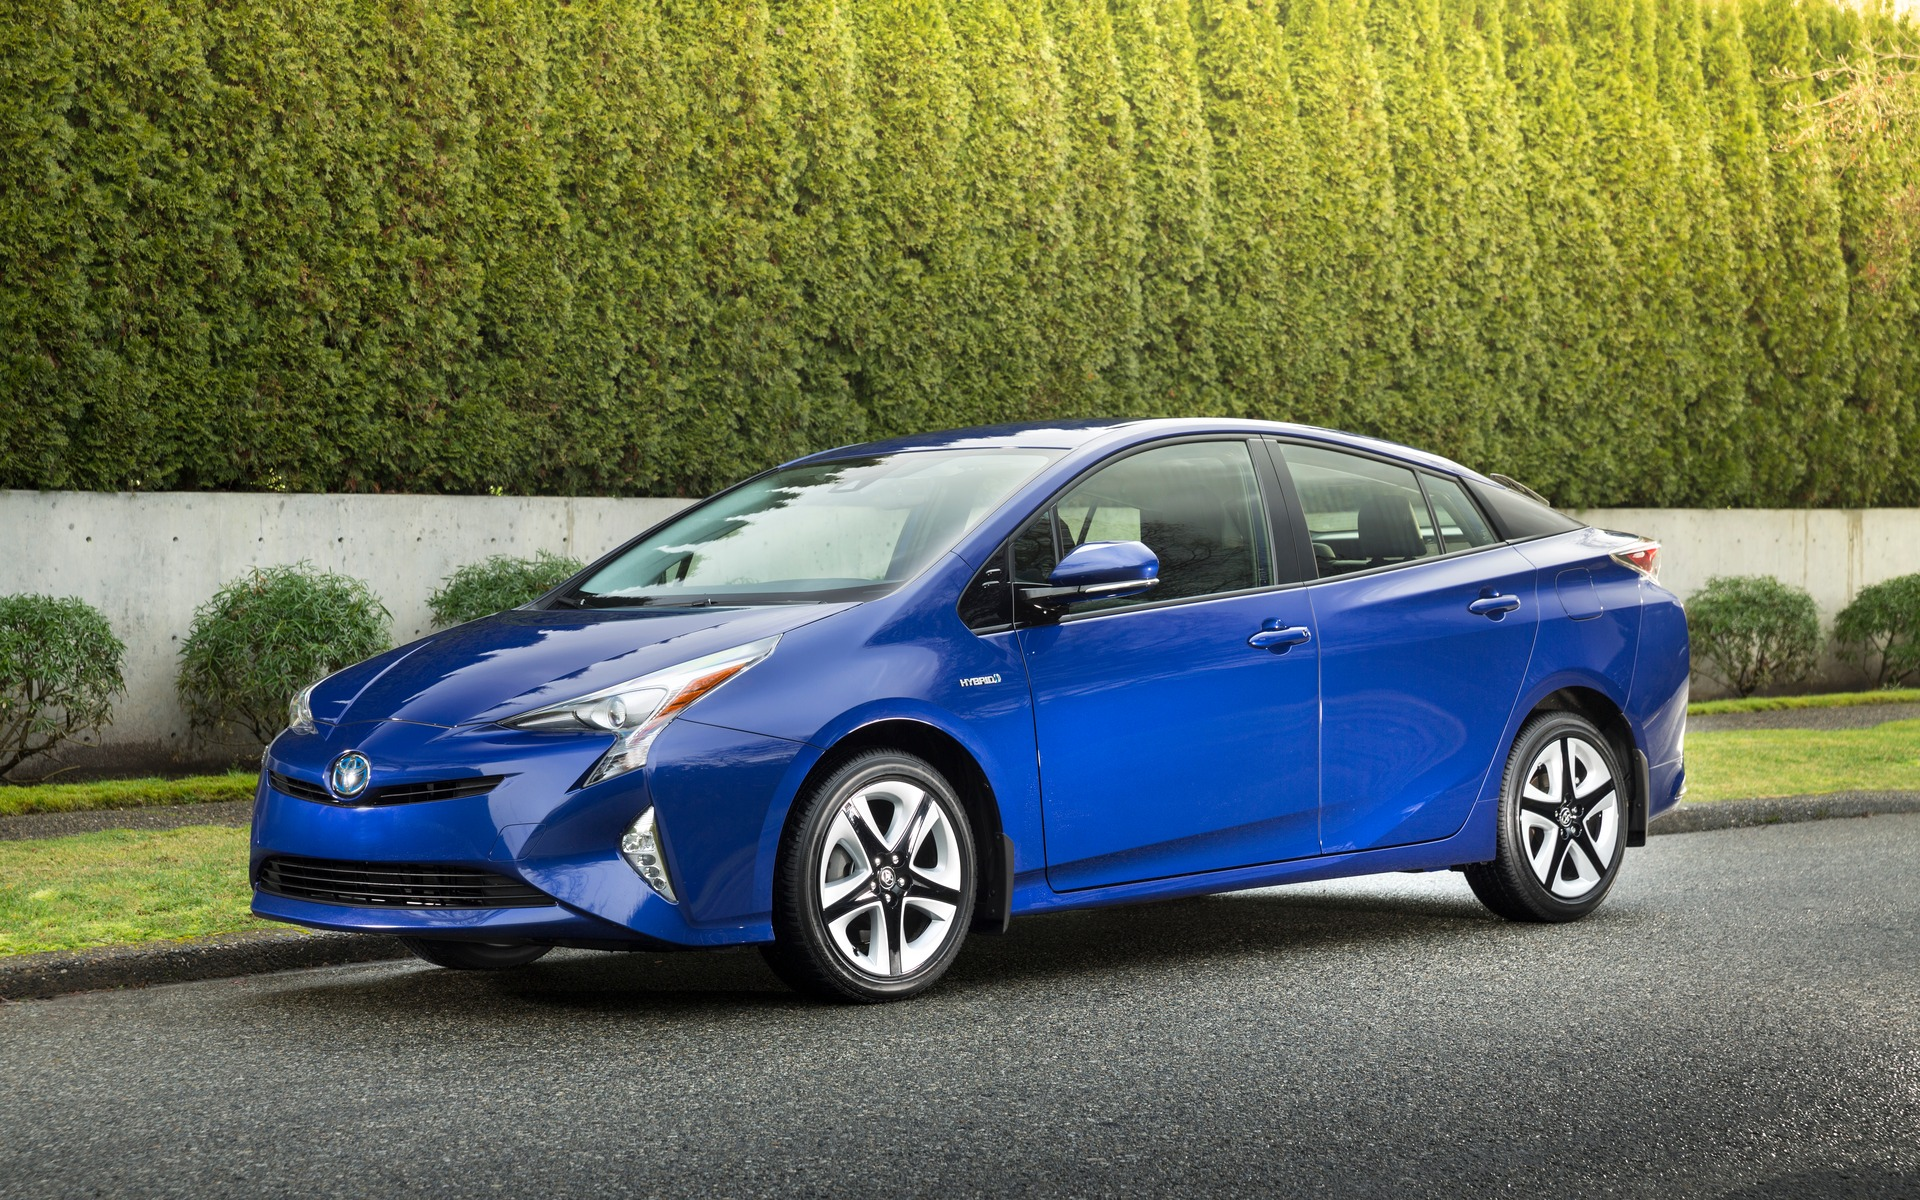 Toyota Prius, 2017 Canadian Green Car of the Year according to AJAC.